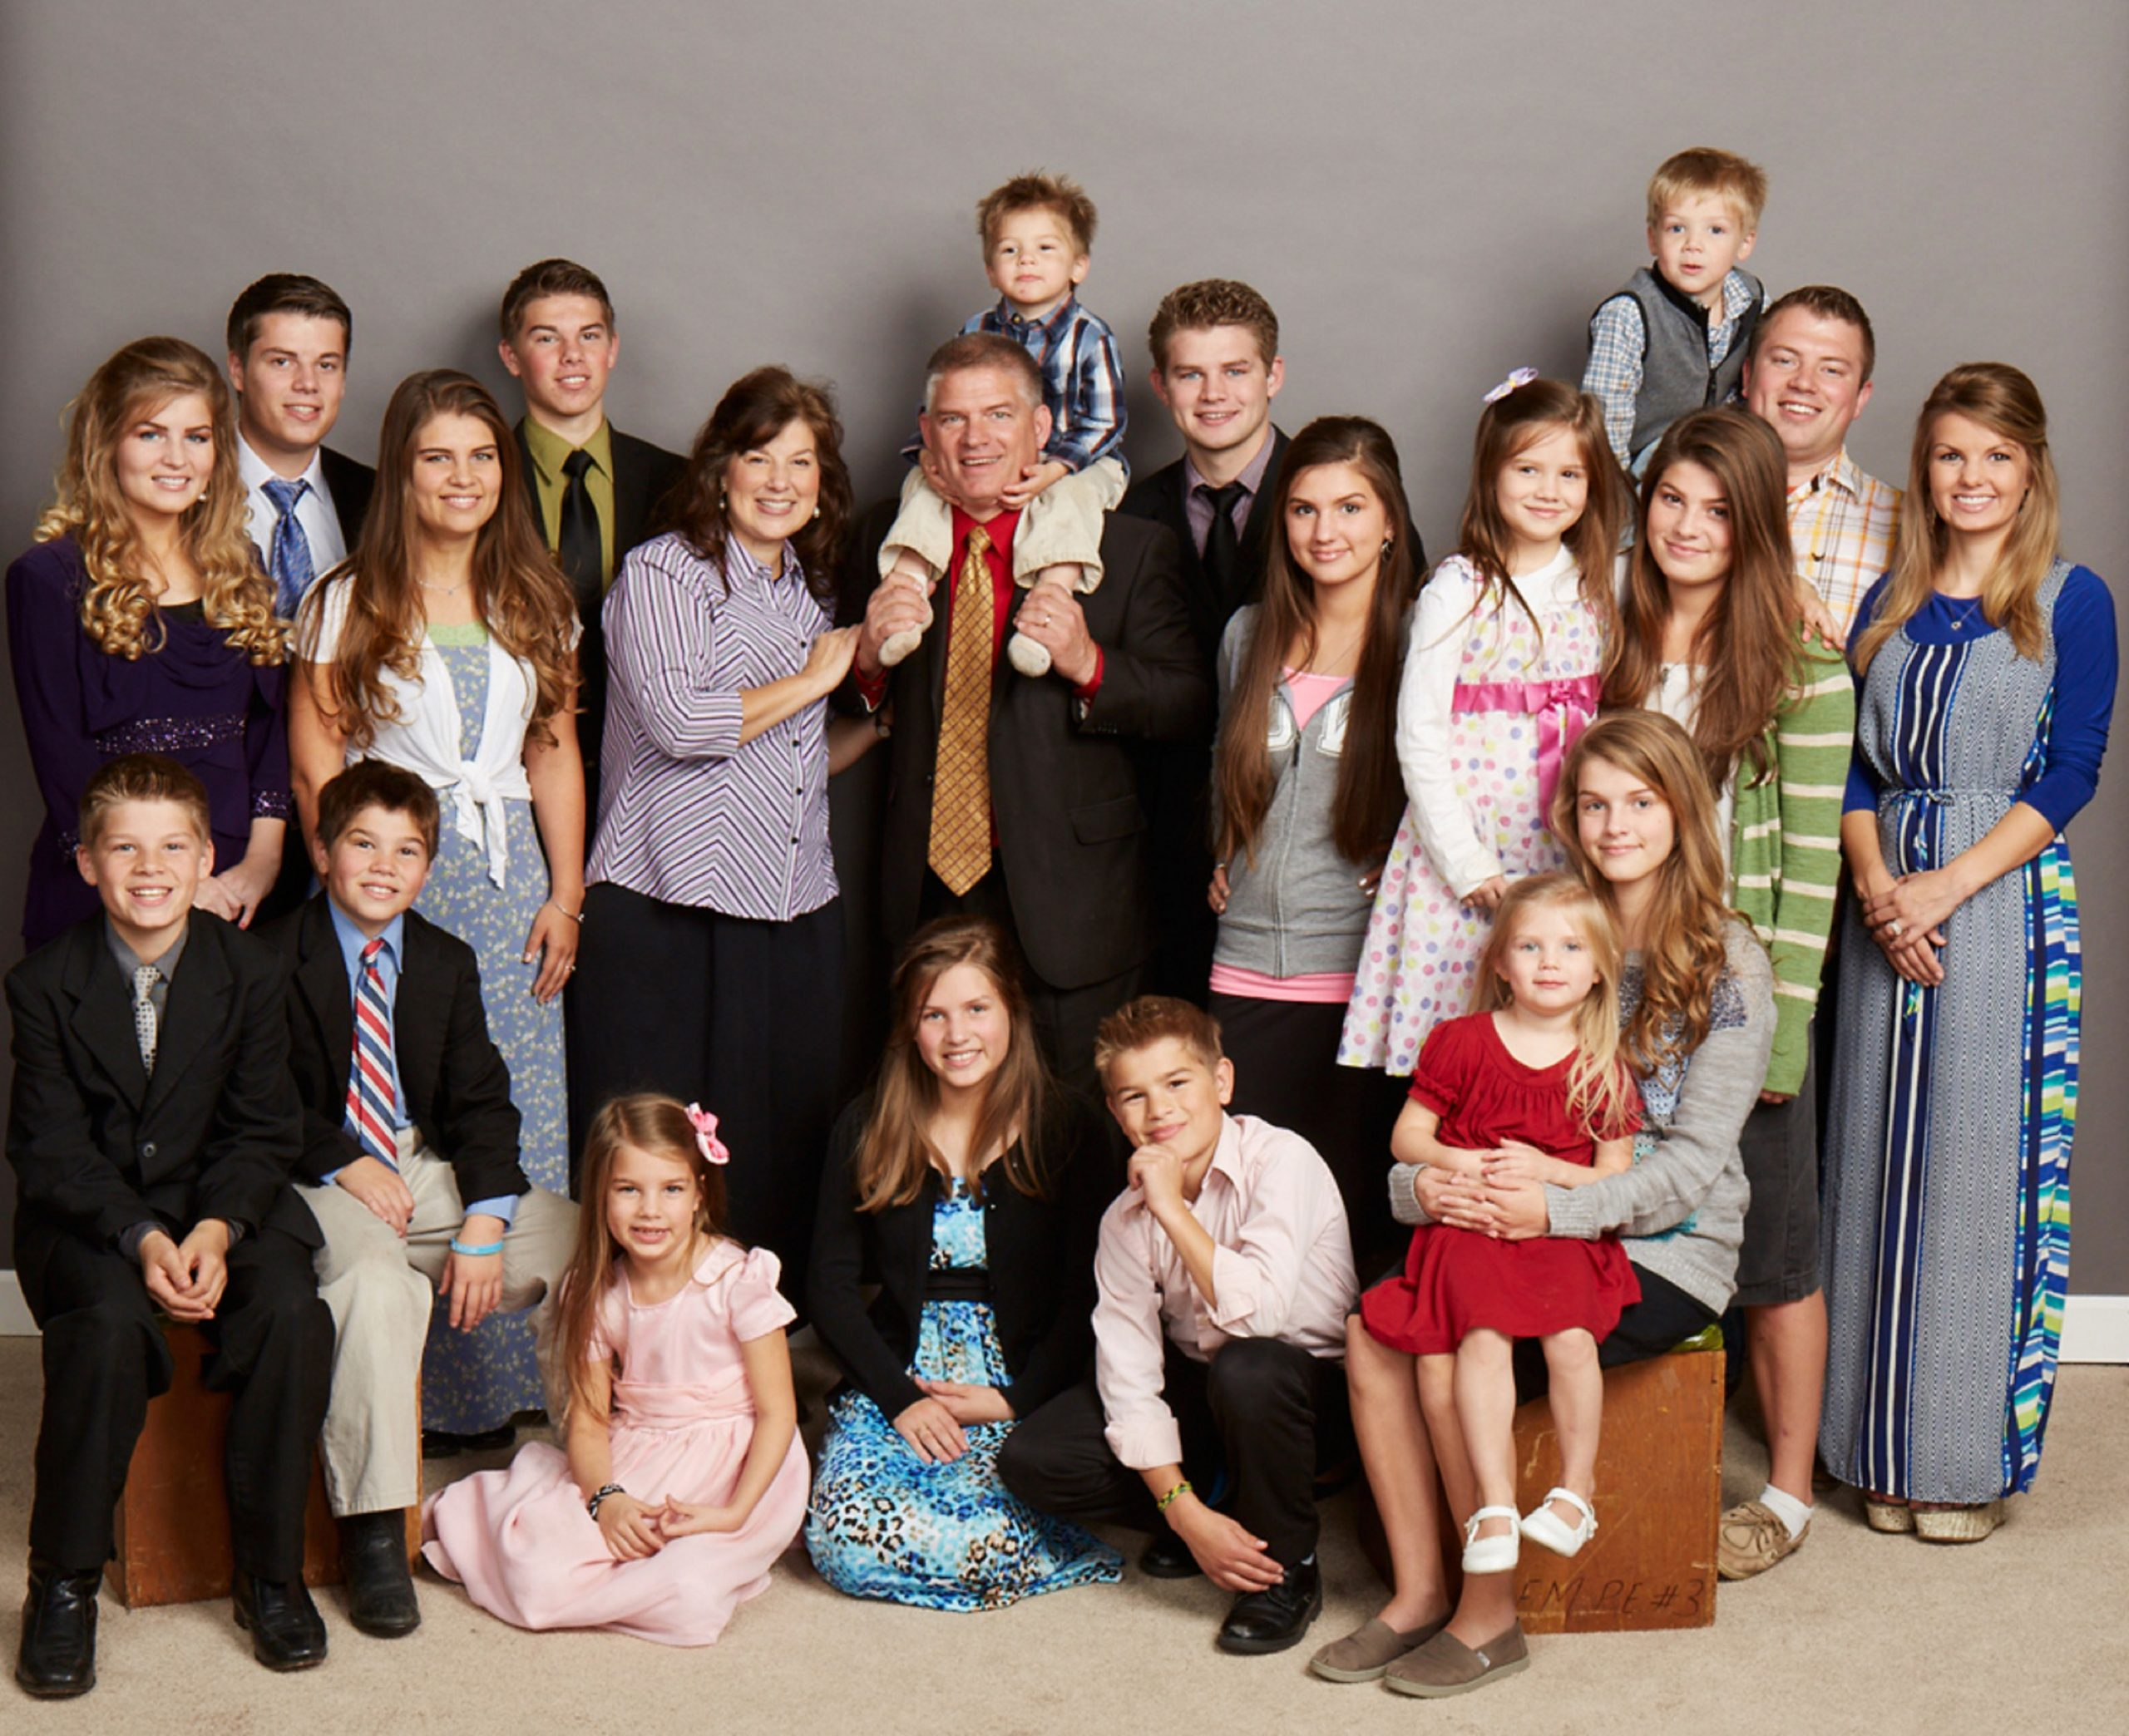 Group photo of the entire Bates family from 'Bringing Up Bates' in 2014